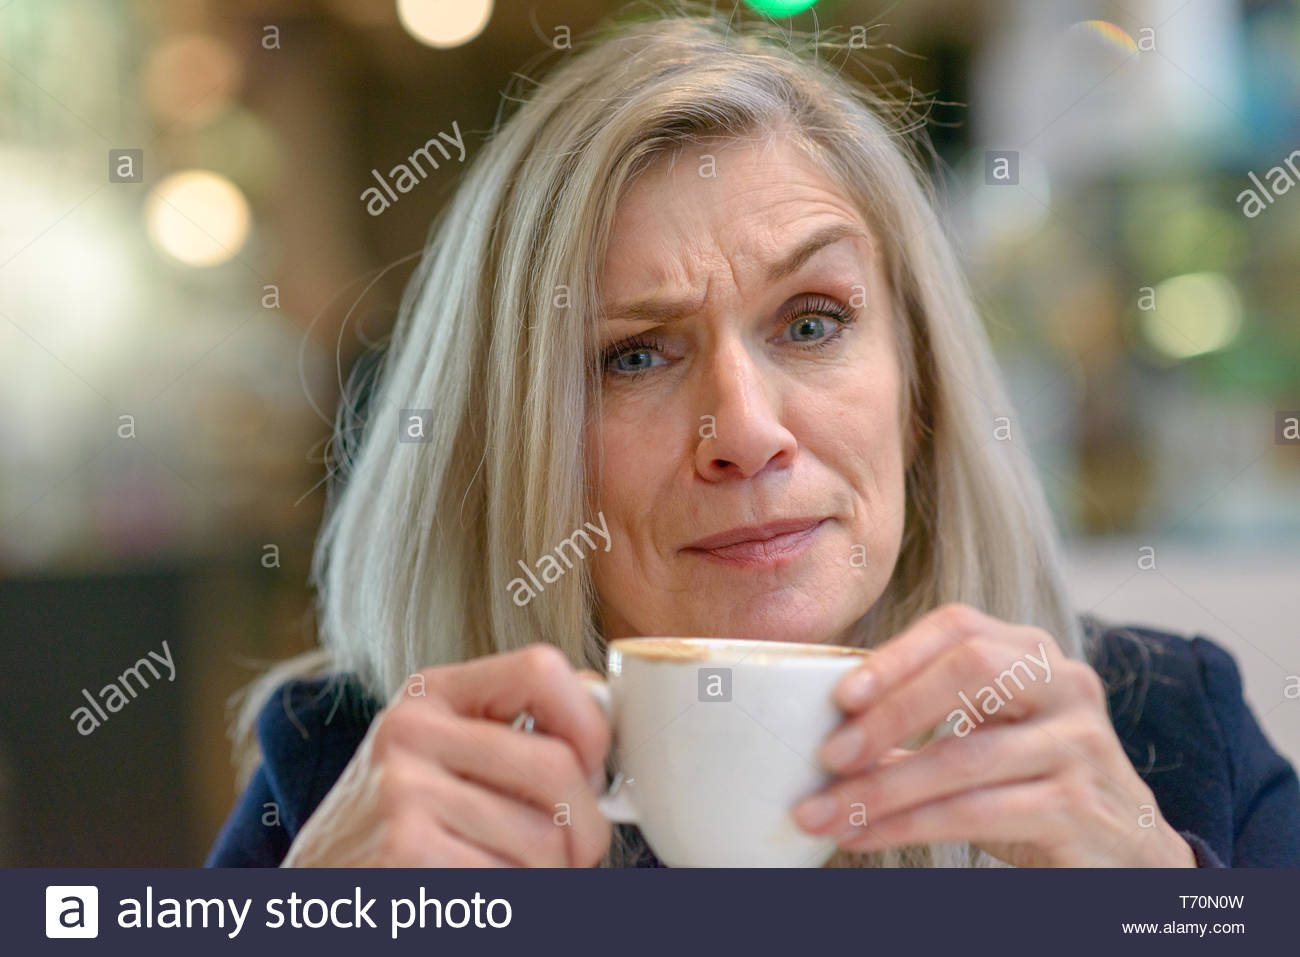 Puzzled or disbelieving middle aged woman - Stock Image